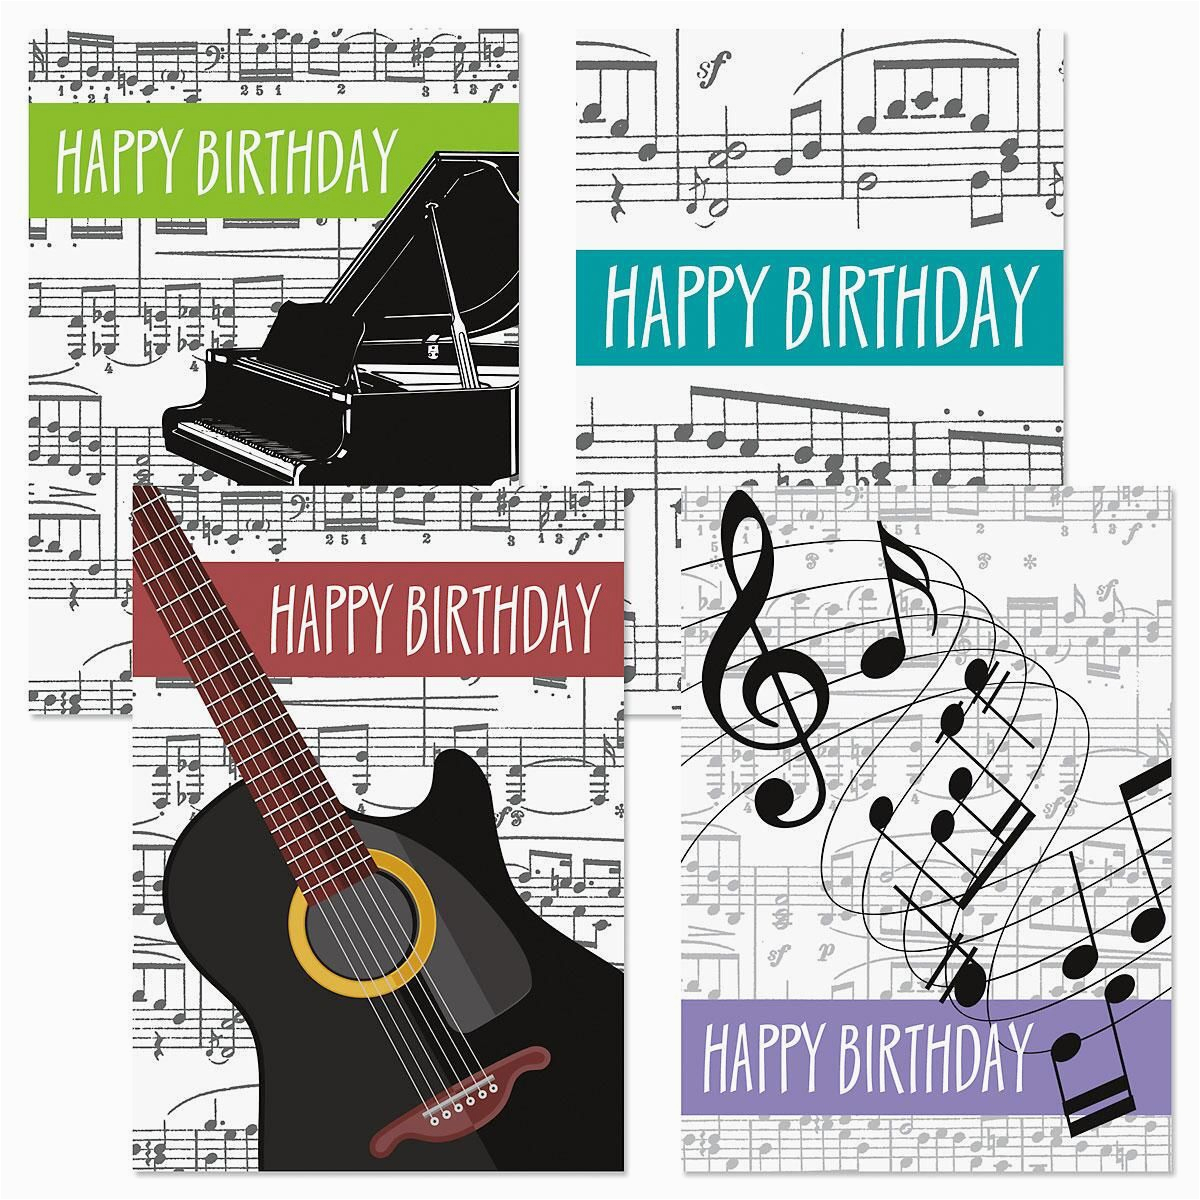 Music Theme Birthday Cards Colorful Images